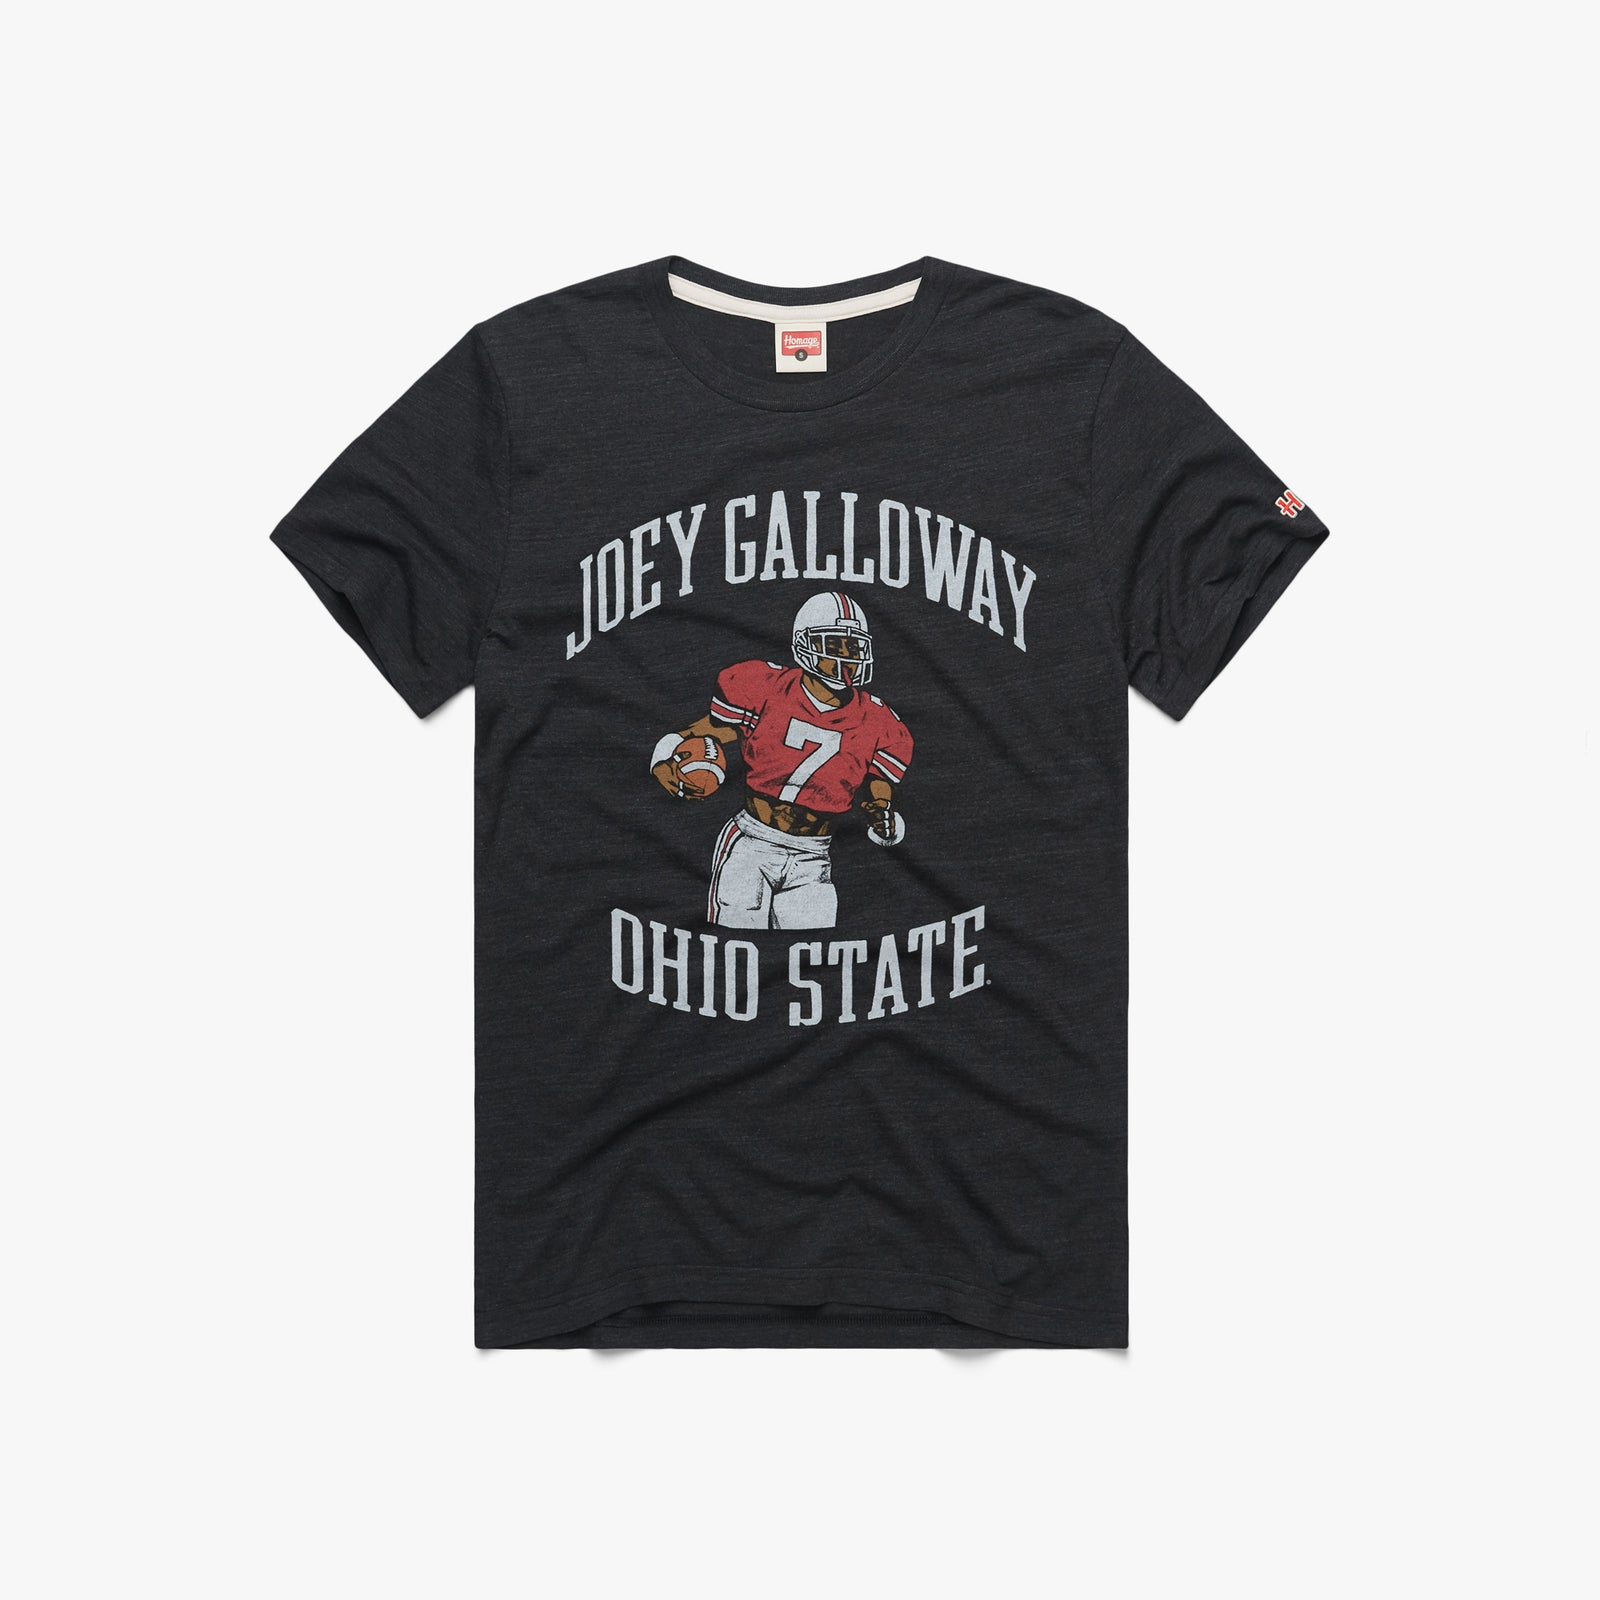 Joey Galloway Ohio State